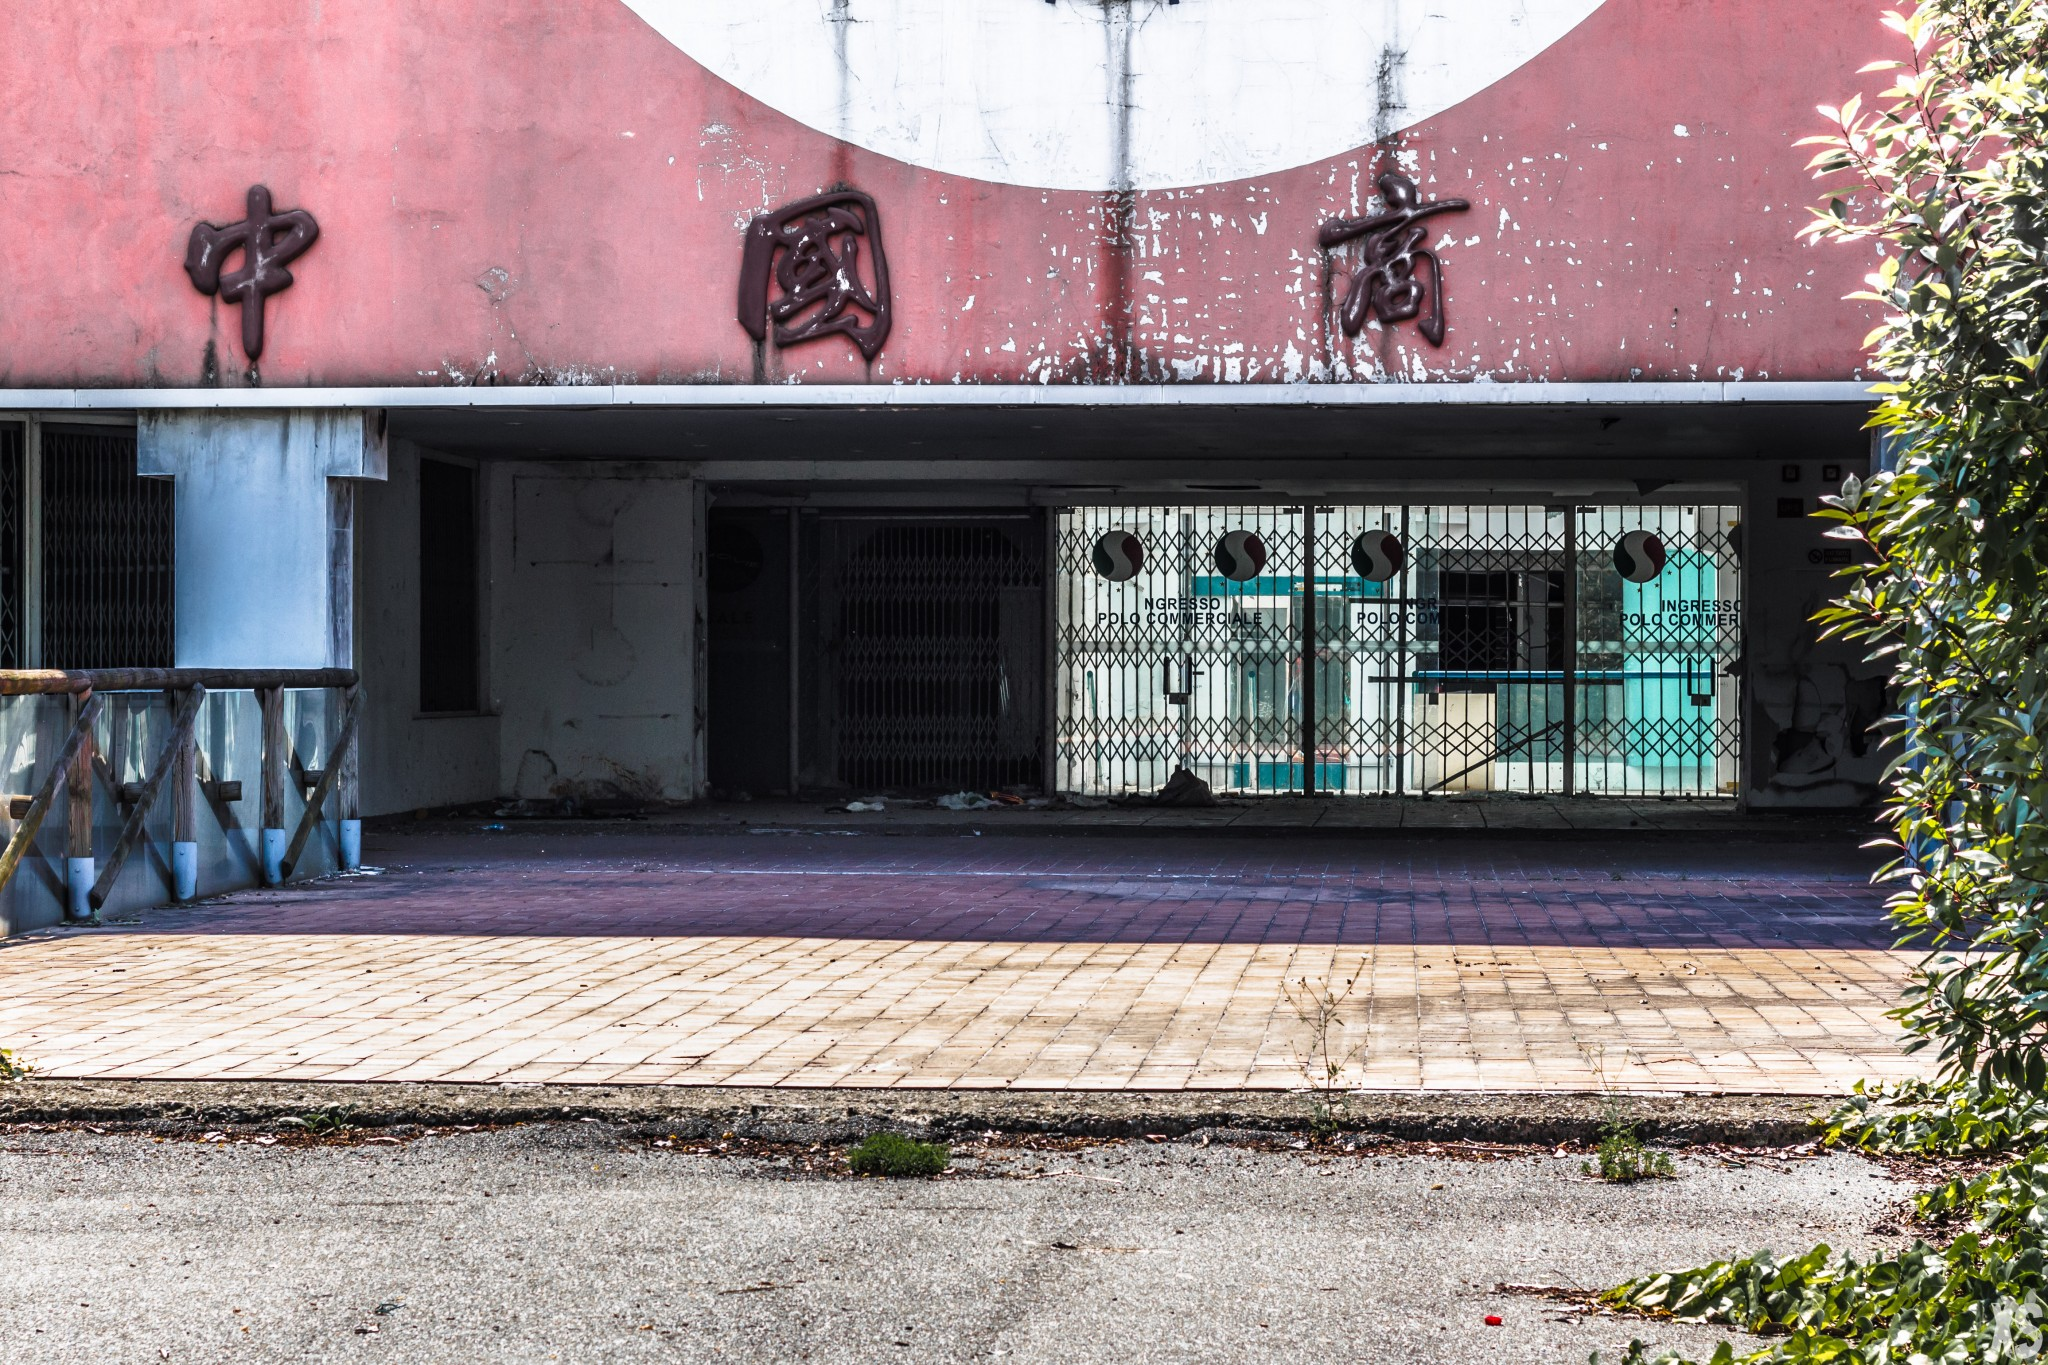 Abandoned Shopping Mall in Italy - Urbex